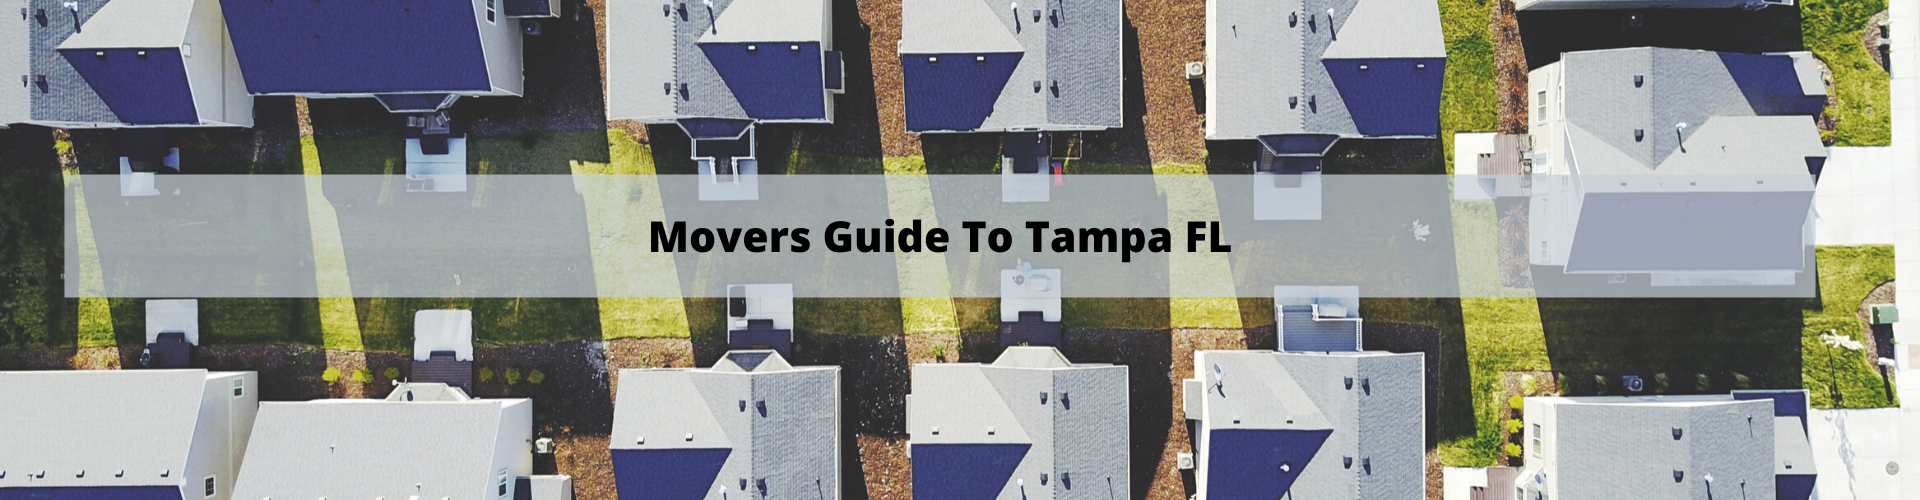 Mover's Guide to Tampa FL